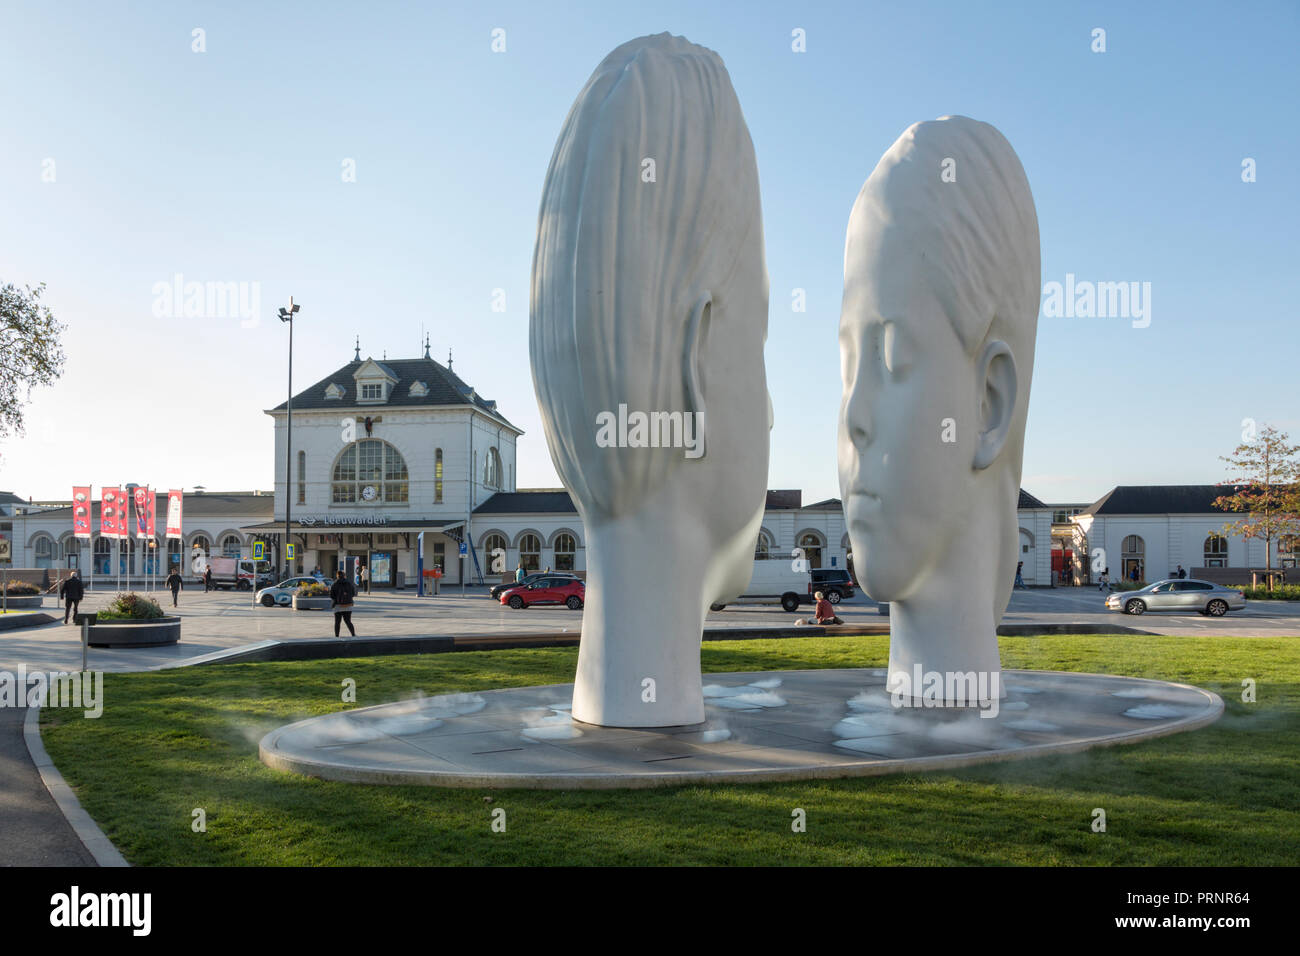 Leeuwarden, The Netherlands - September 18, 2018: 'Love' by Jaume Plensa. The fountain is one of eleven placed all over Fryslân province for the Europ - Stock Image